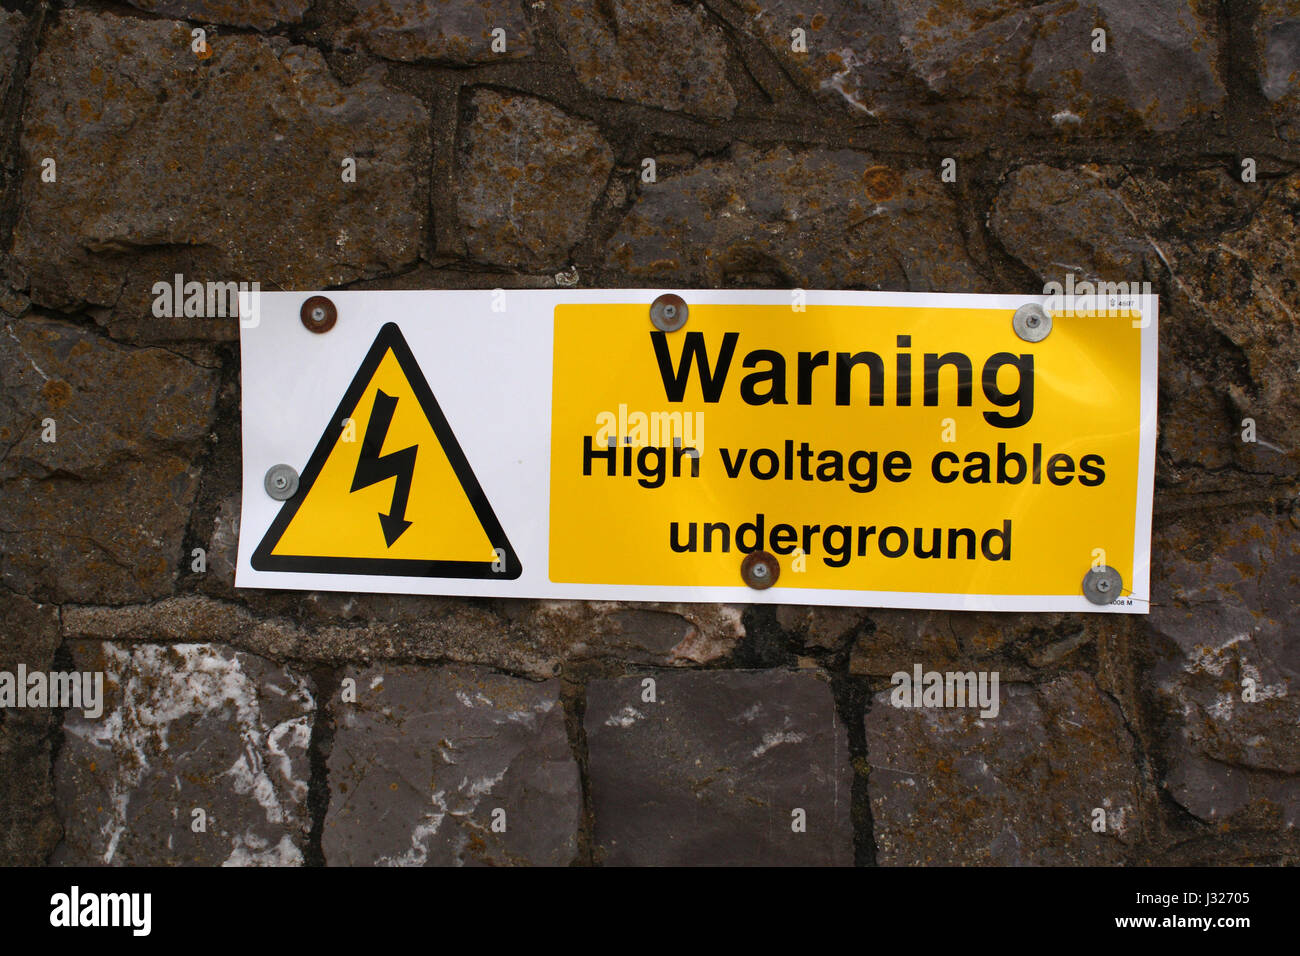 7th April 2008 - Warning high voltage cable sign fixed to a wall - Stock Image